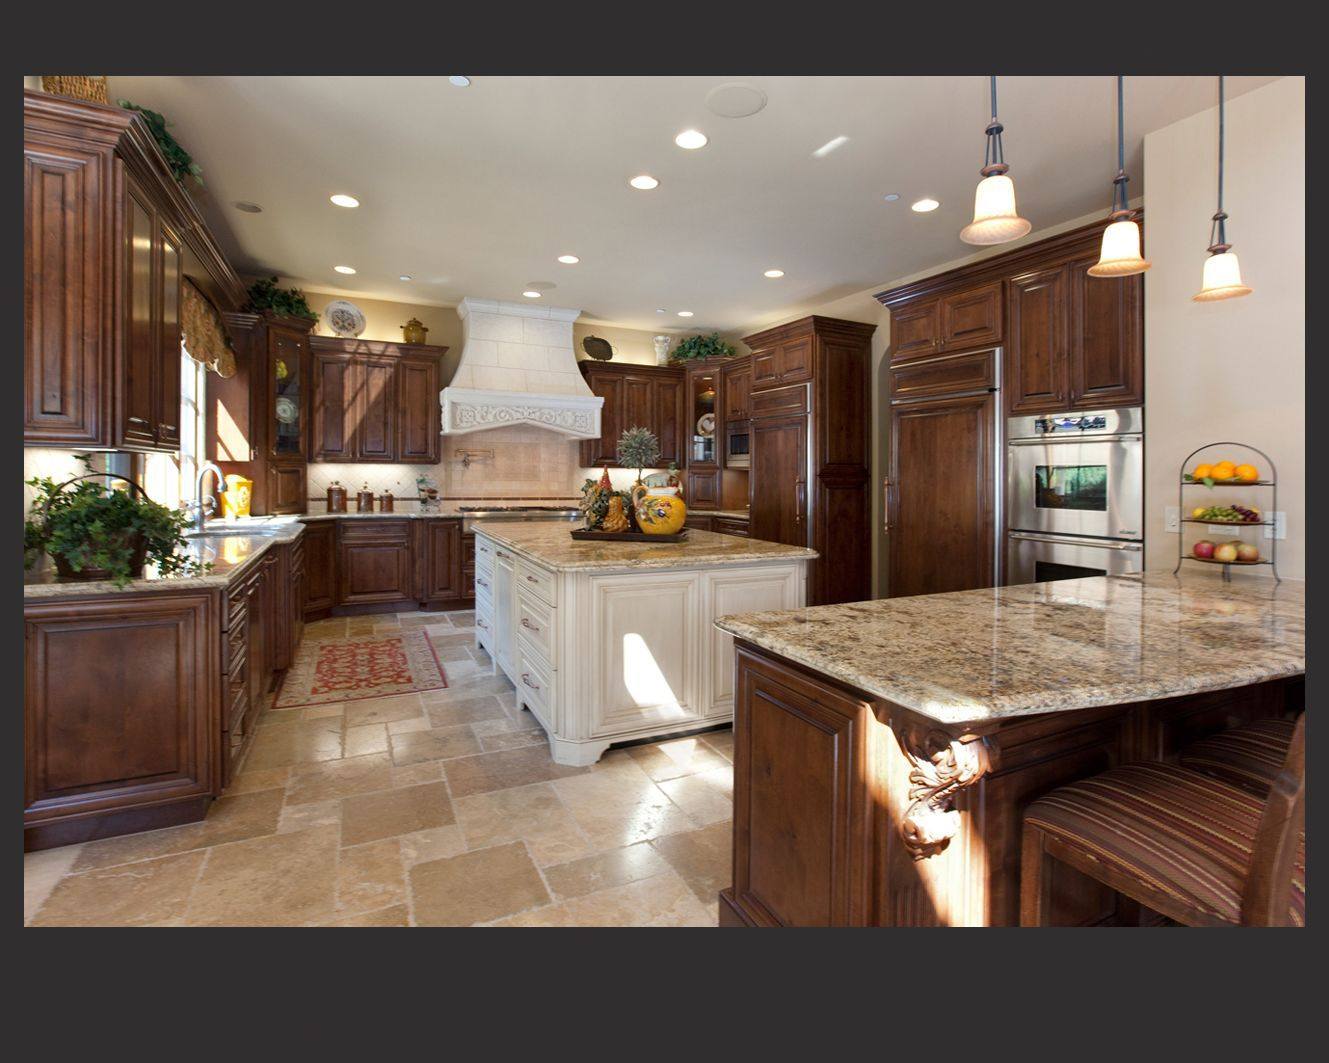 Paint Colors For Kitchens With Dark Brown Cabinets Cheap Kitchen Island Ideas Check Dark Wood Kitchen Cabinets Dark Brown Kitchen Cabinets Dark Wood Kitchens